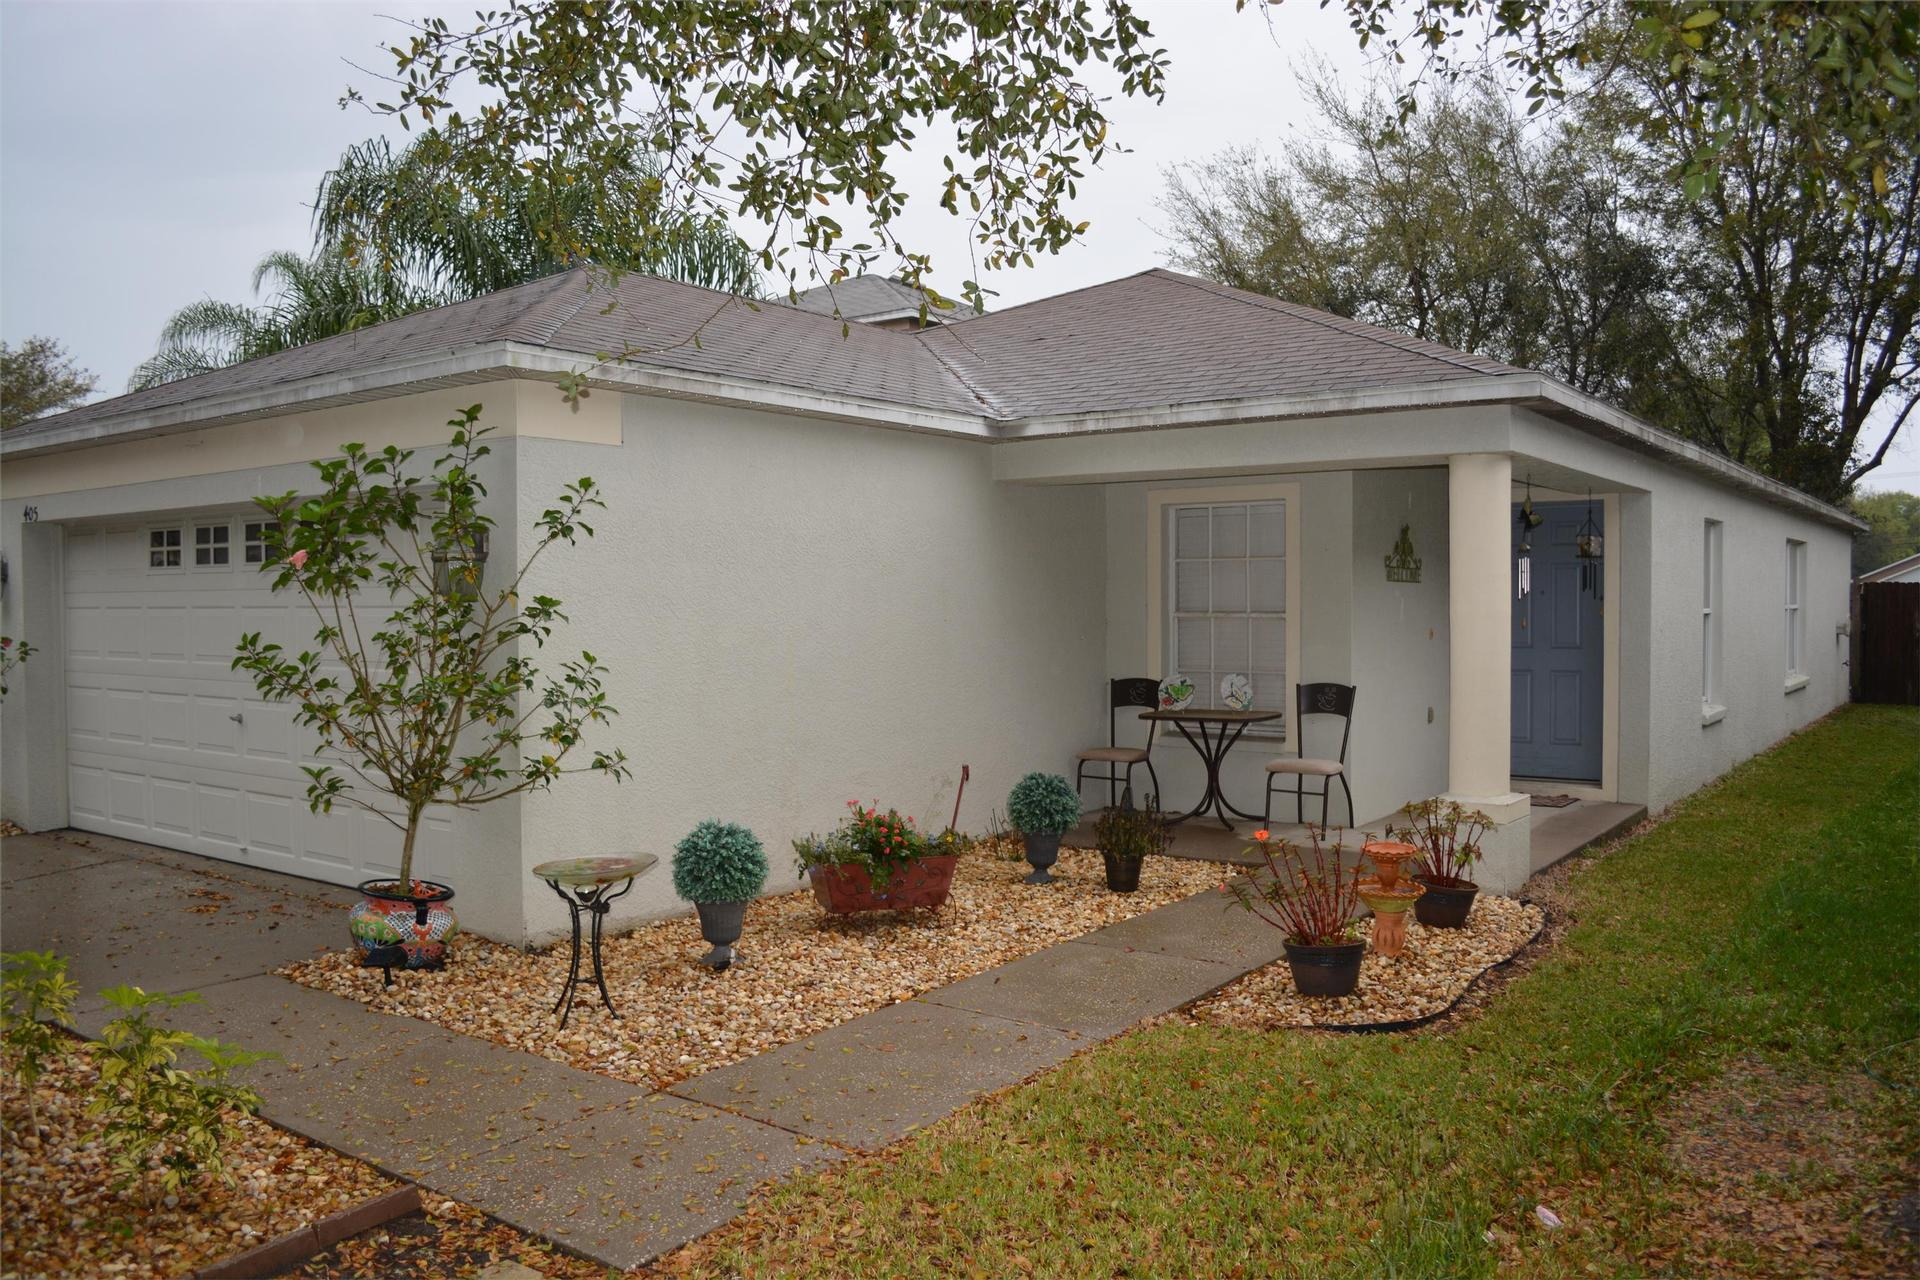 Photo of property: 405 Pine Pointe Court Seffner, FL 33584